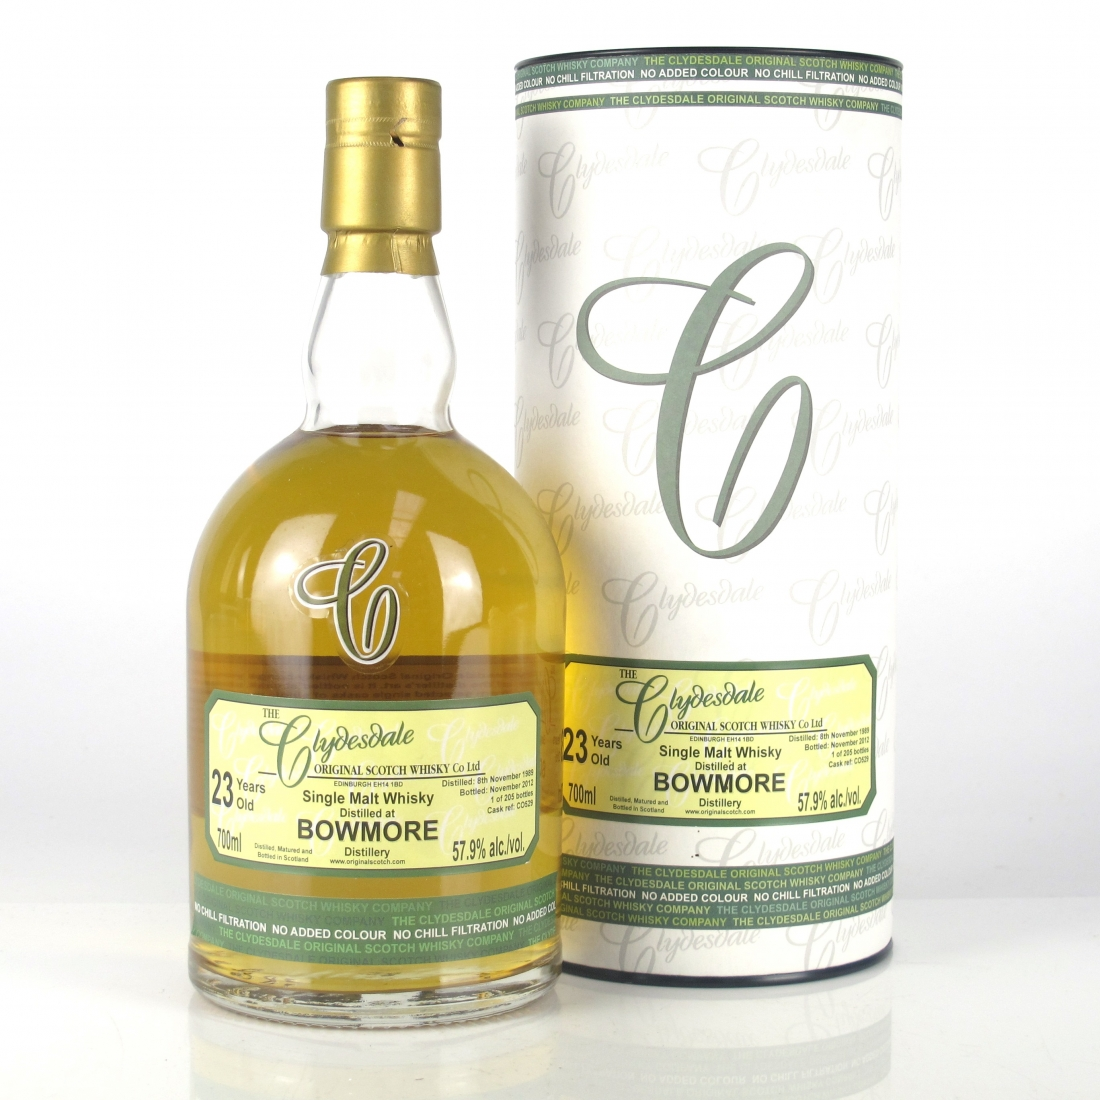 Bowmore 1989 Clydesdale 23 Year Old